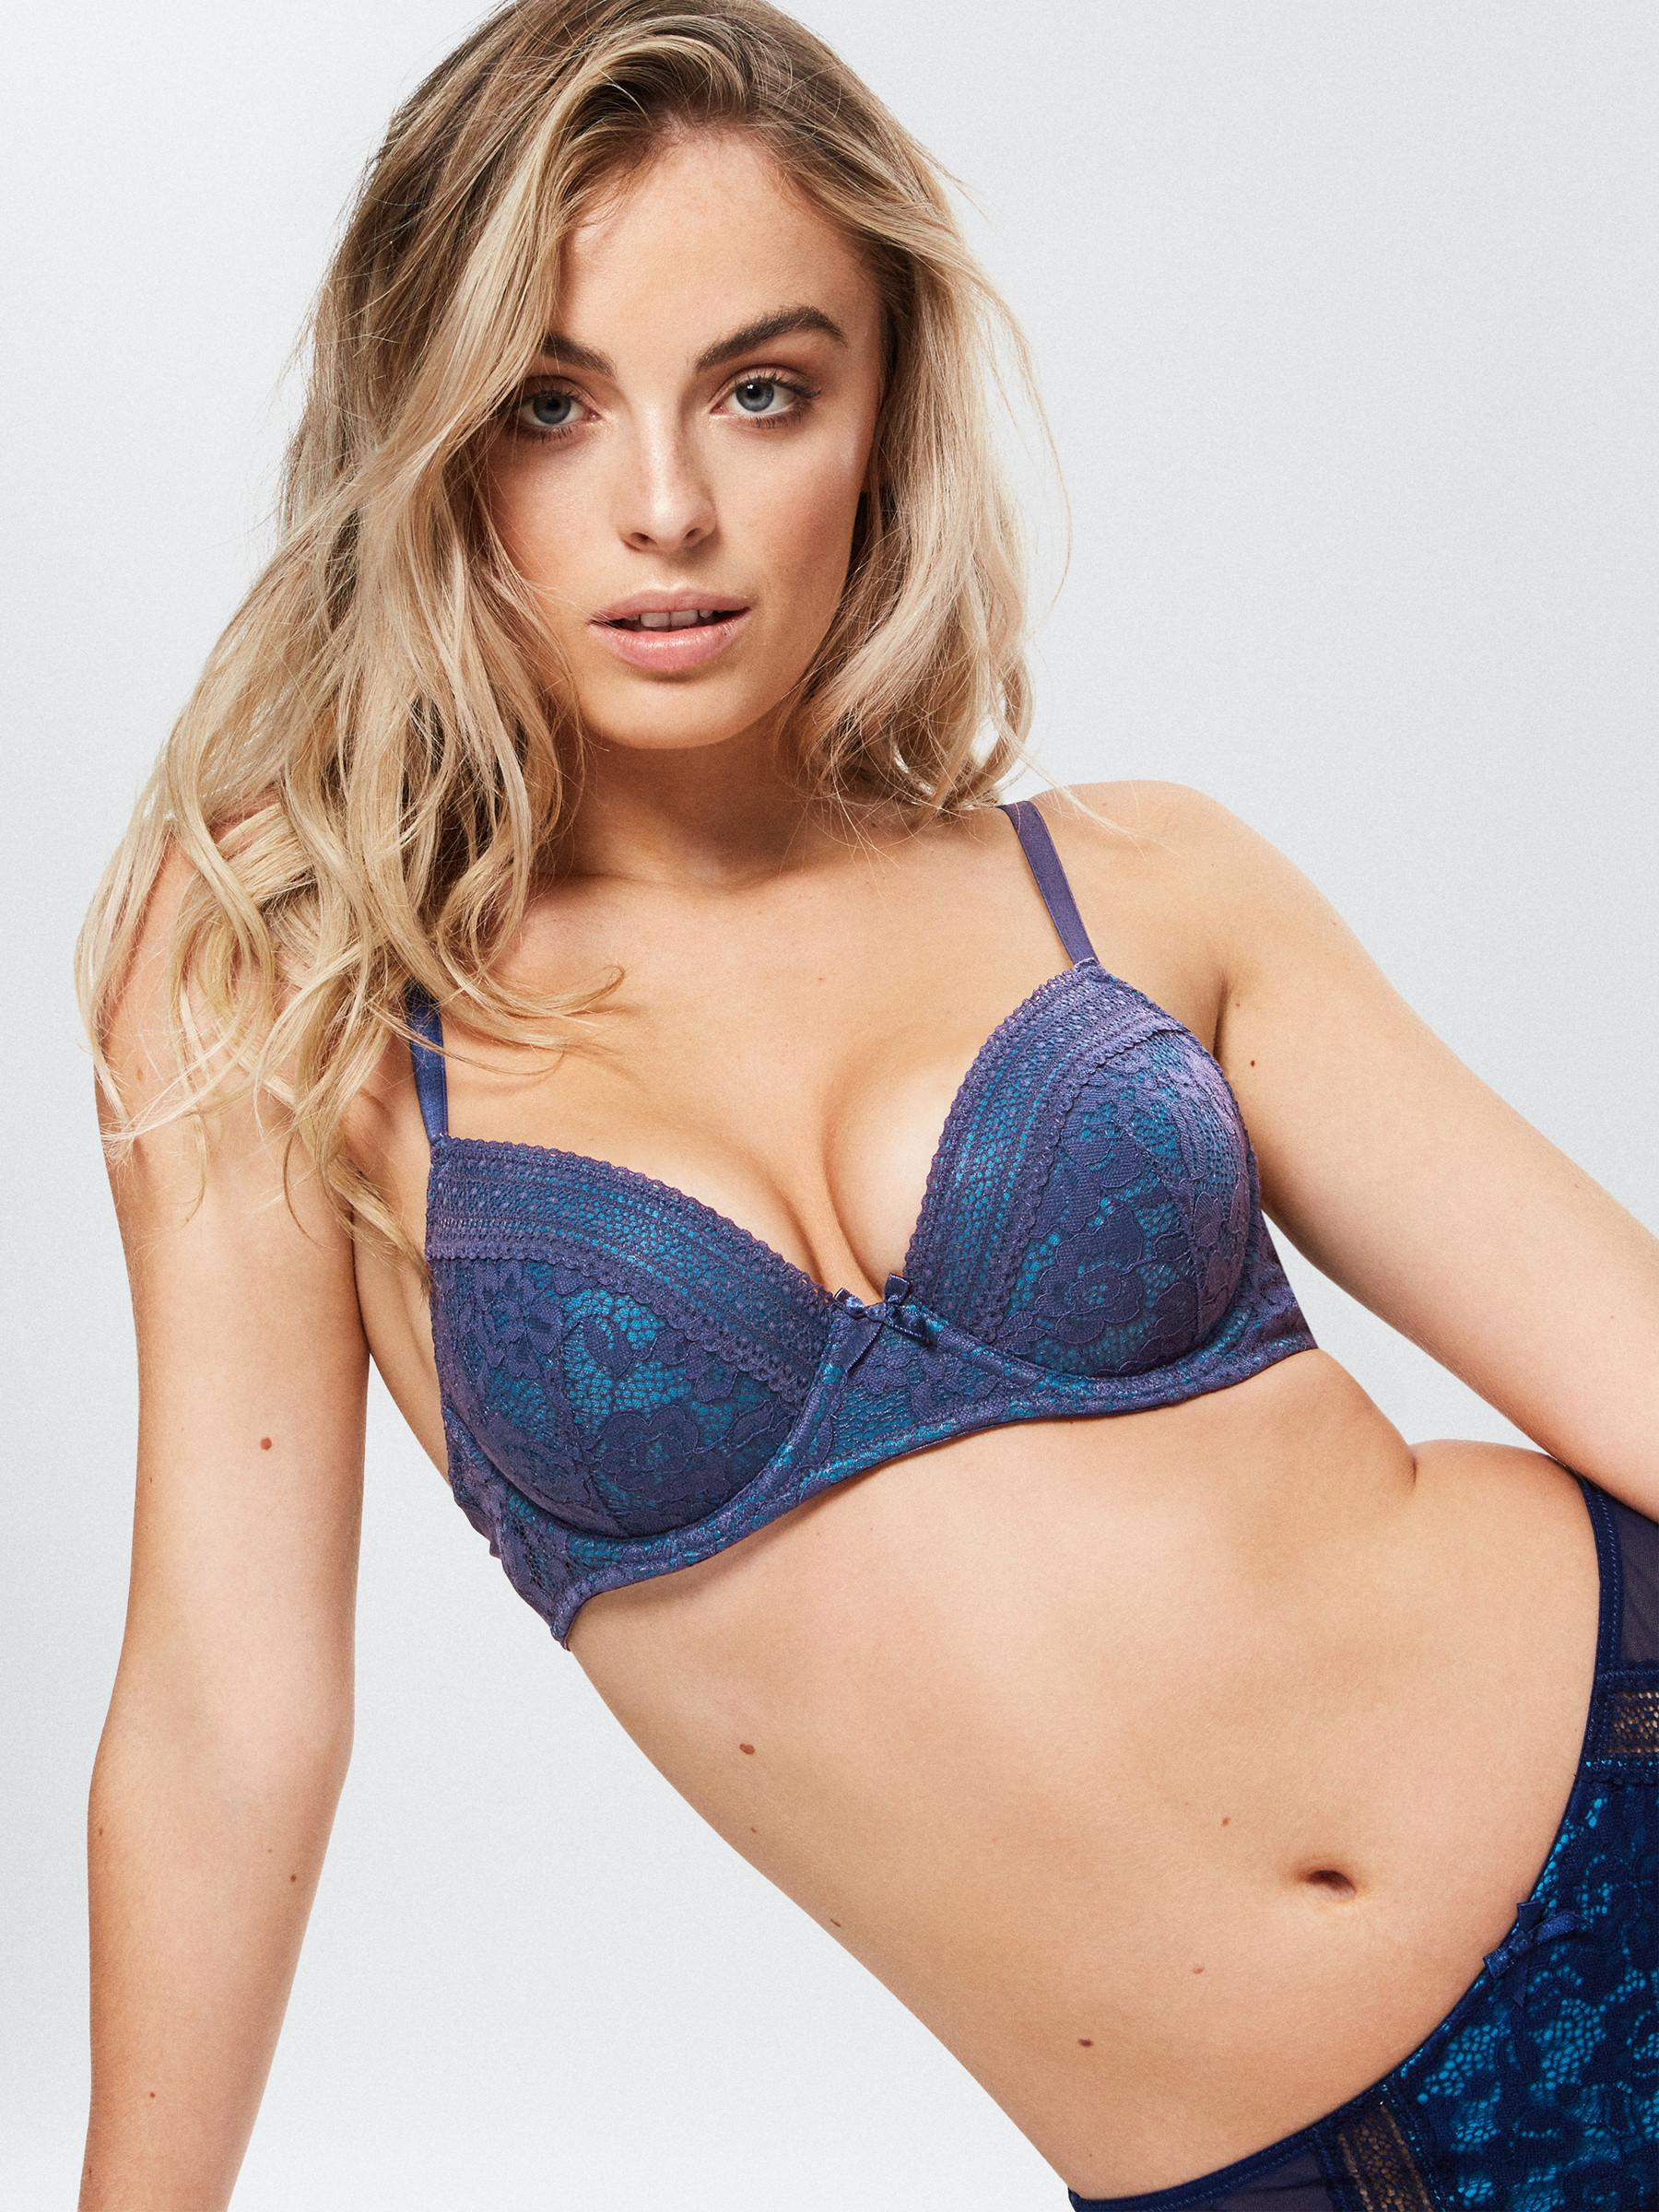 6e1f1cfd70 Details about Ann Summers Womens Knickerbox Missy Bra Lace Sexy Lingerie  Underwear